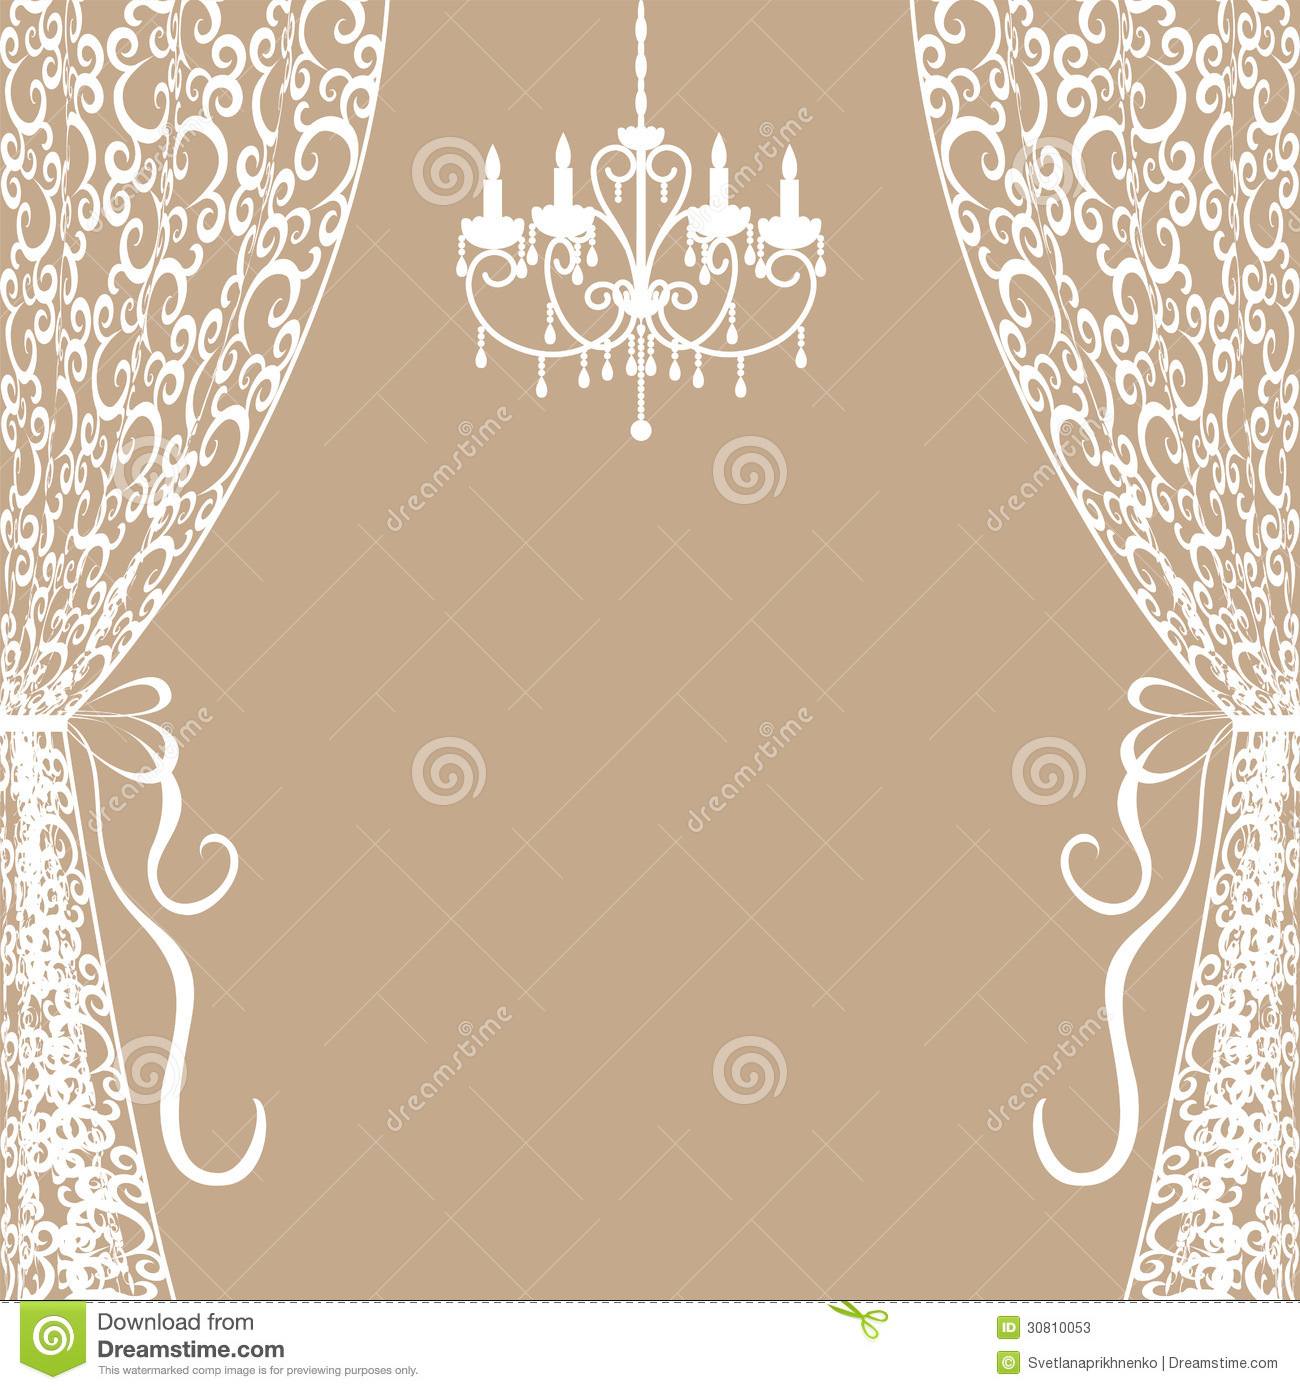 Chandelier And Curtains Stock Photos - Image: 30810053